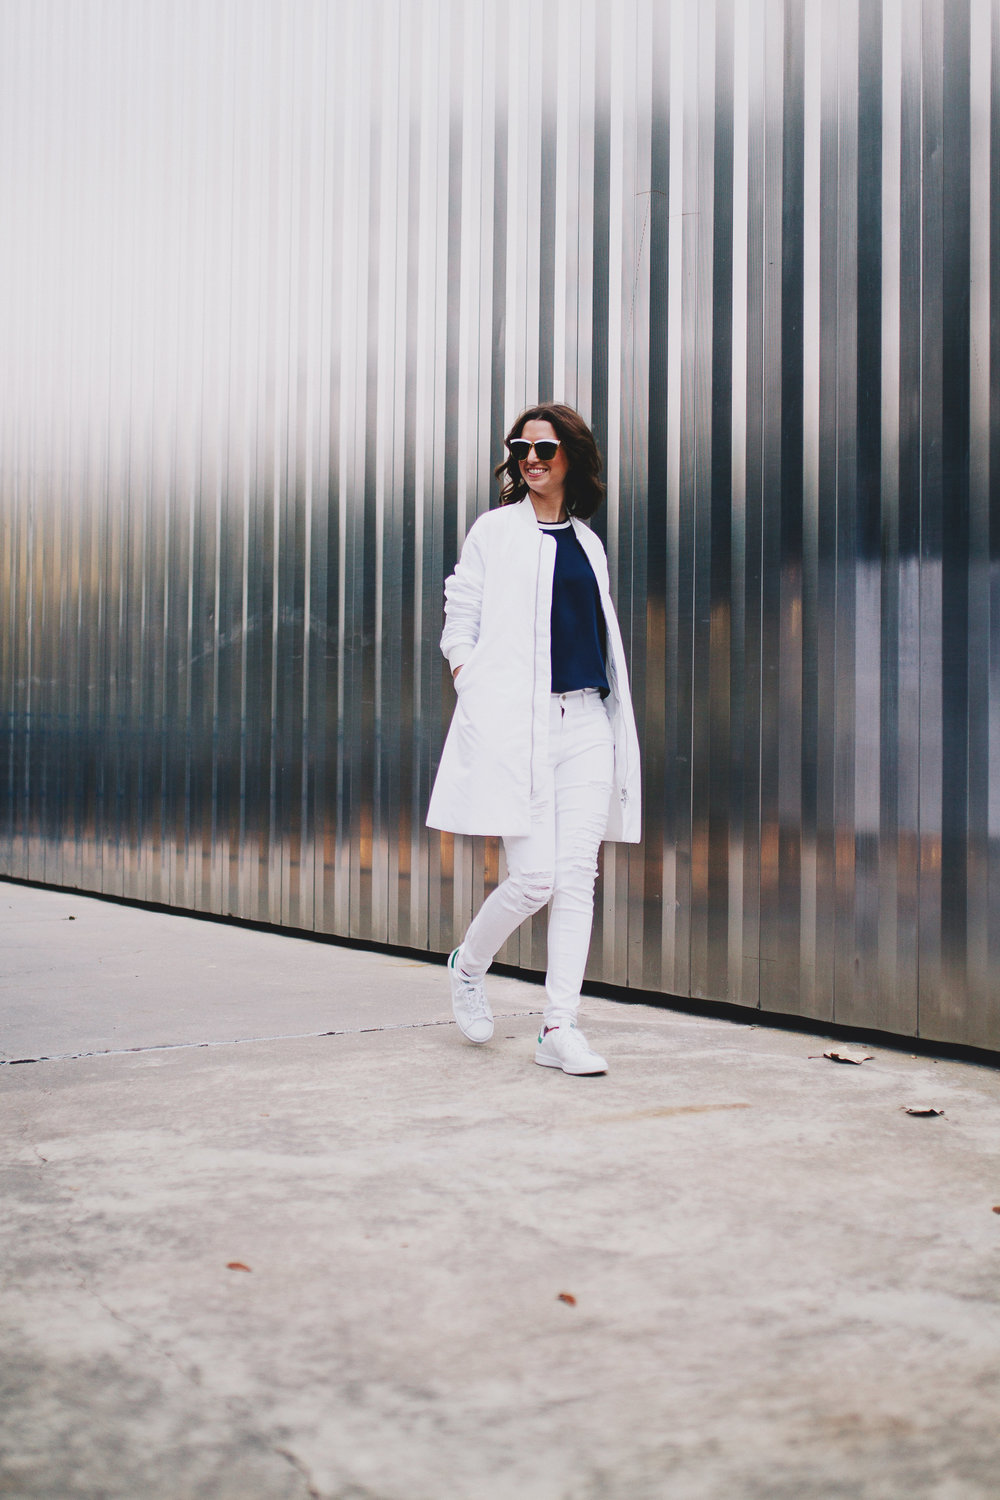 Winter white puffy jacket outfit